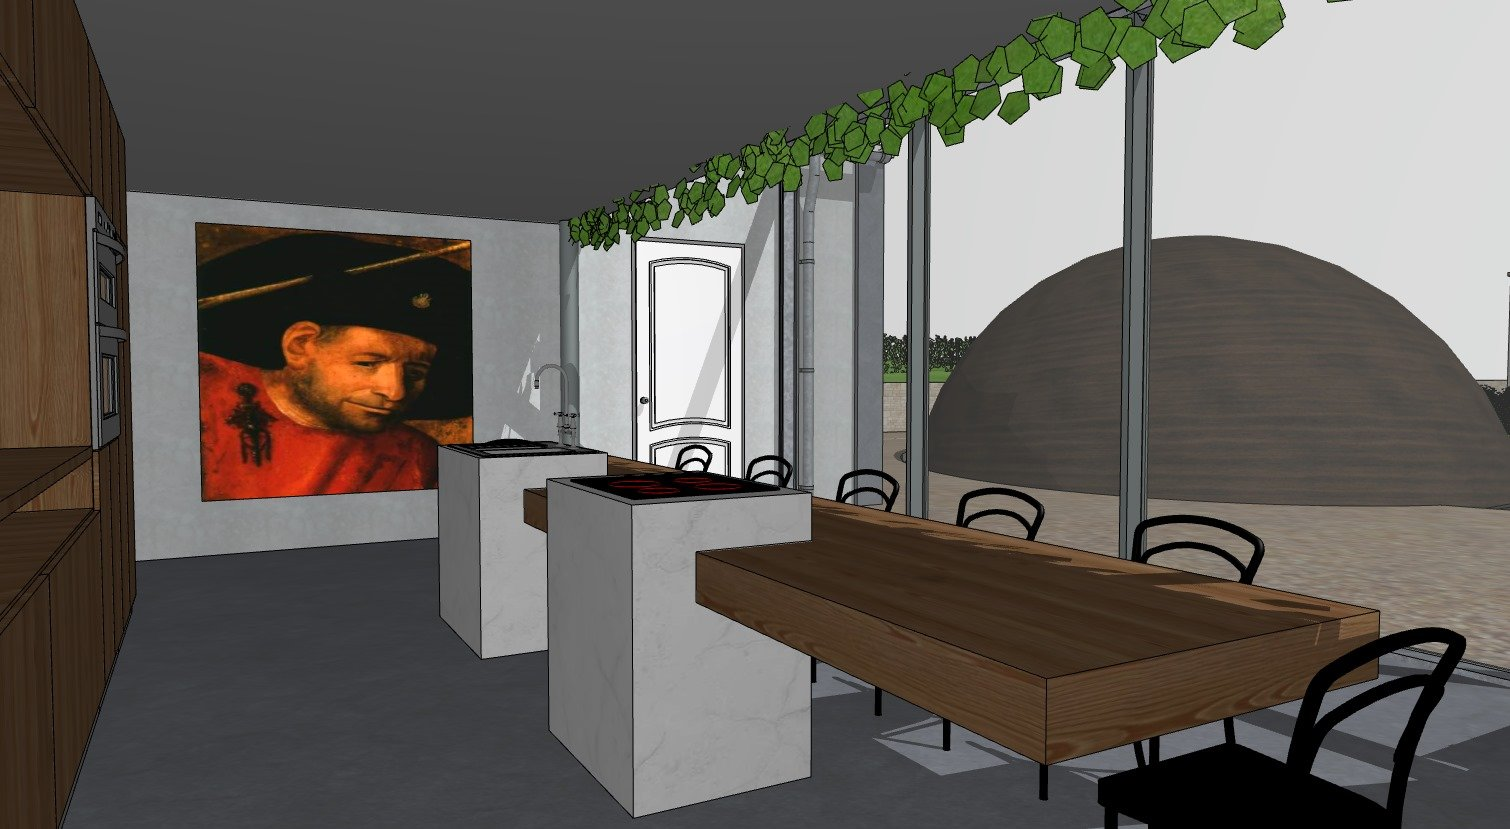 A Sketch of a Kitchen Design Made in Sketchup